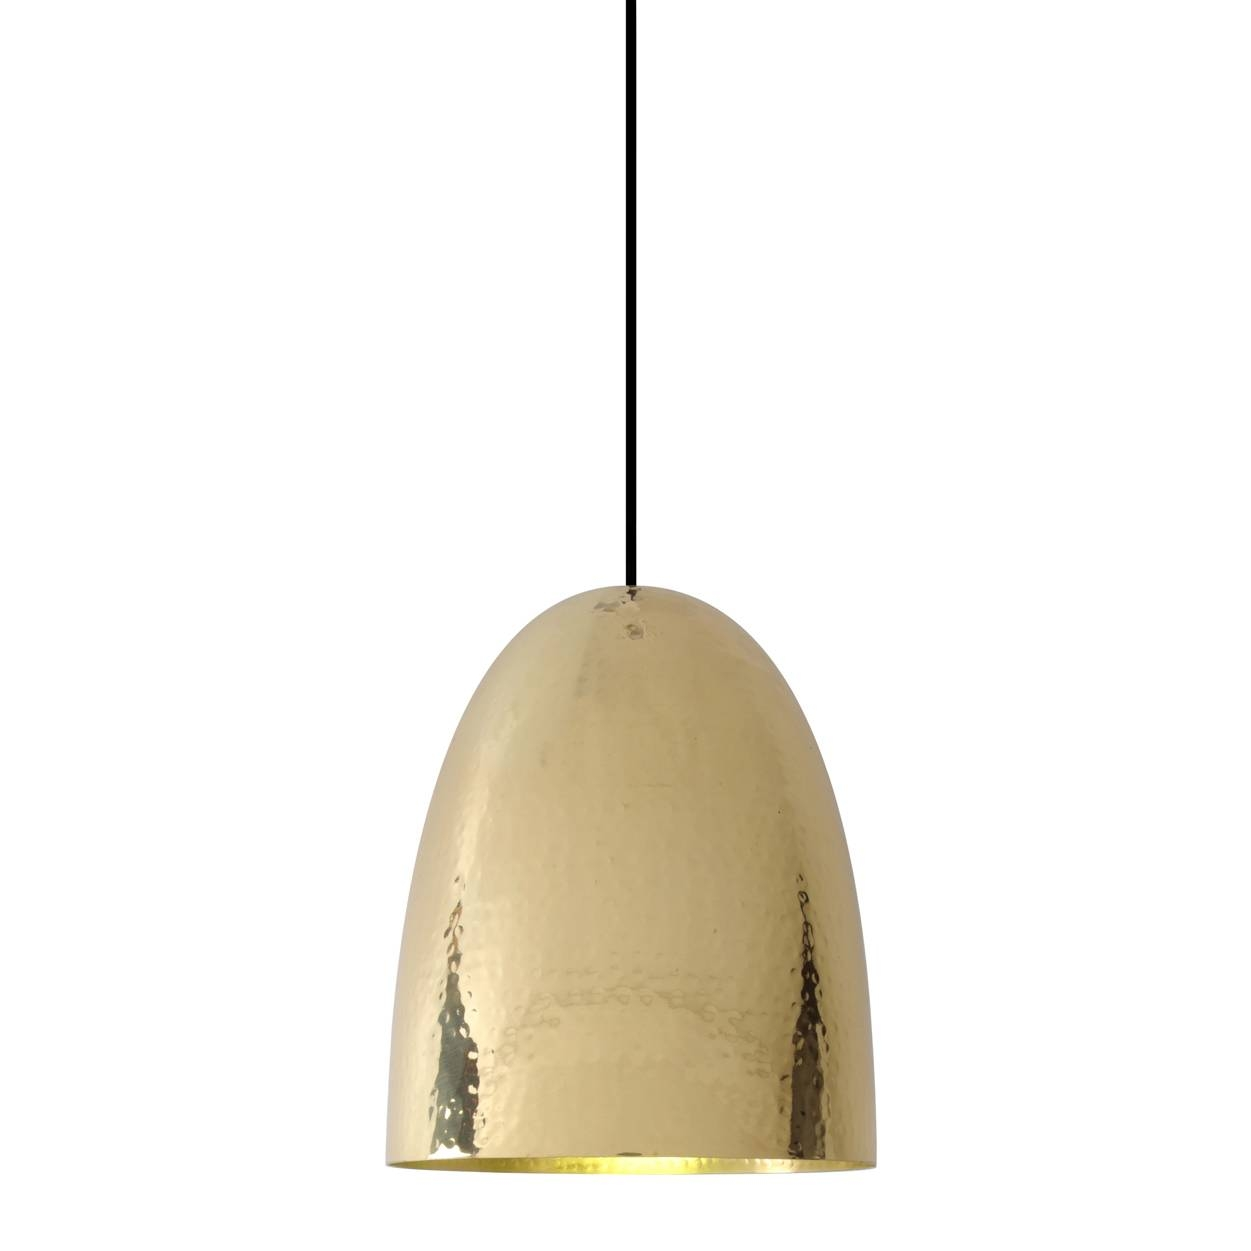 Stanley 3 Brass Pendant - Hammered Finish | Original Btc | Horne with regard to Hammered Pendant Lights (Image 12 of 15)